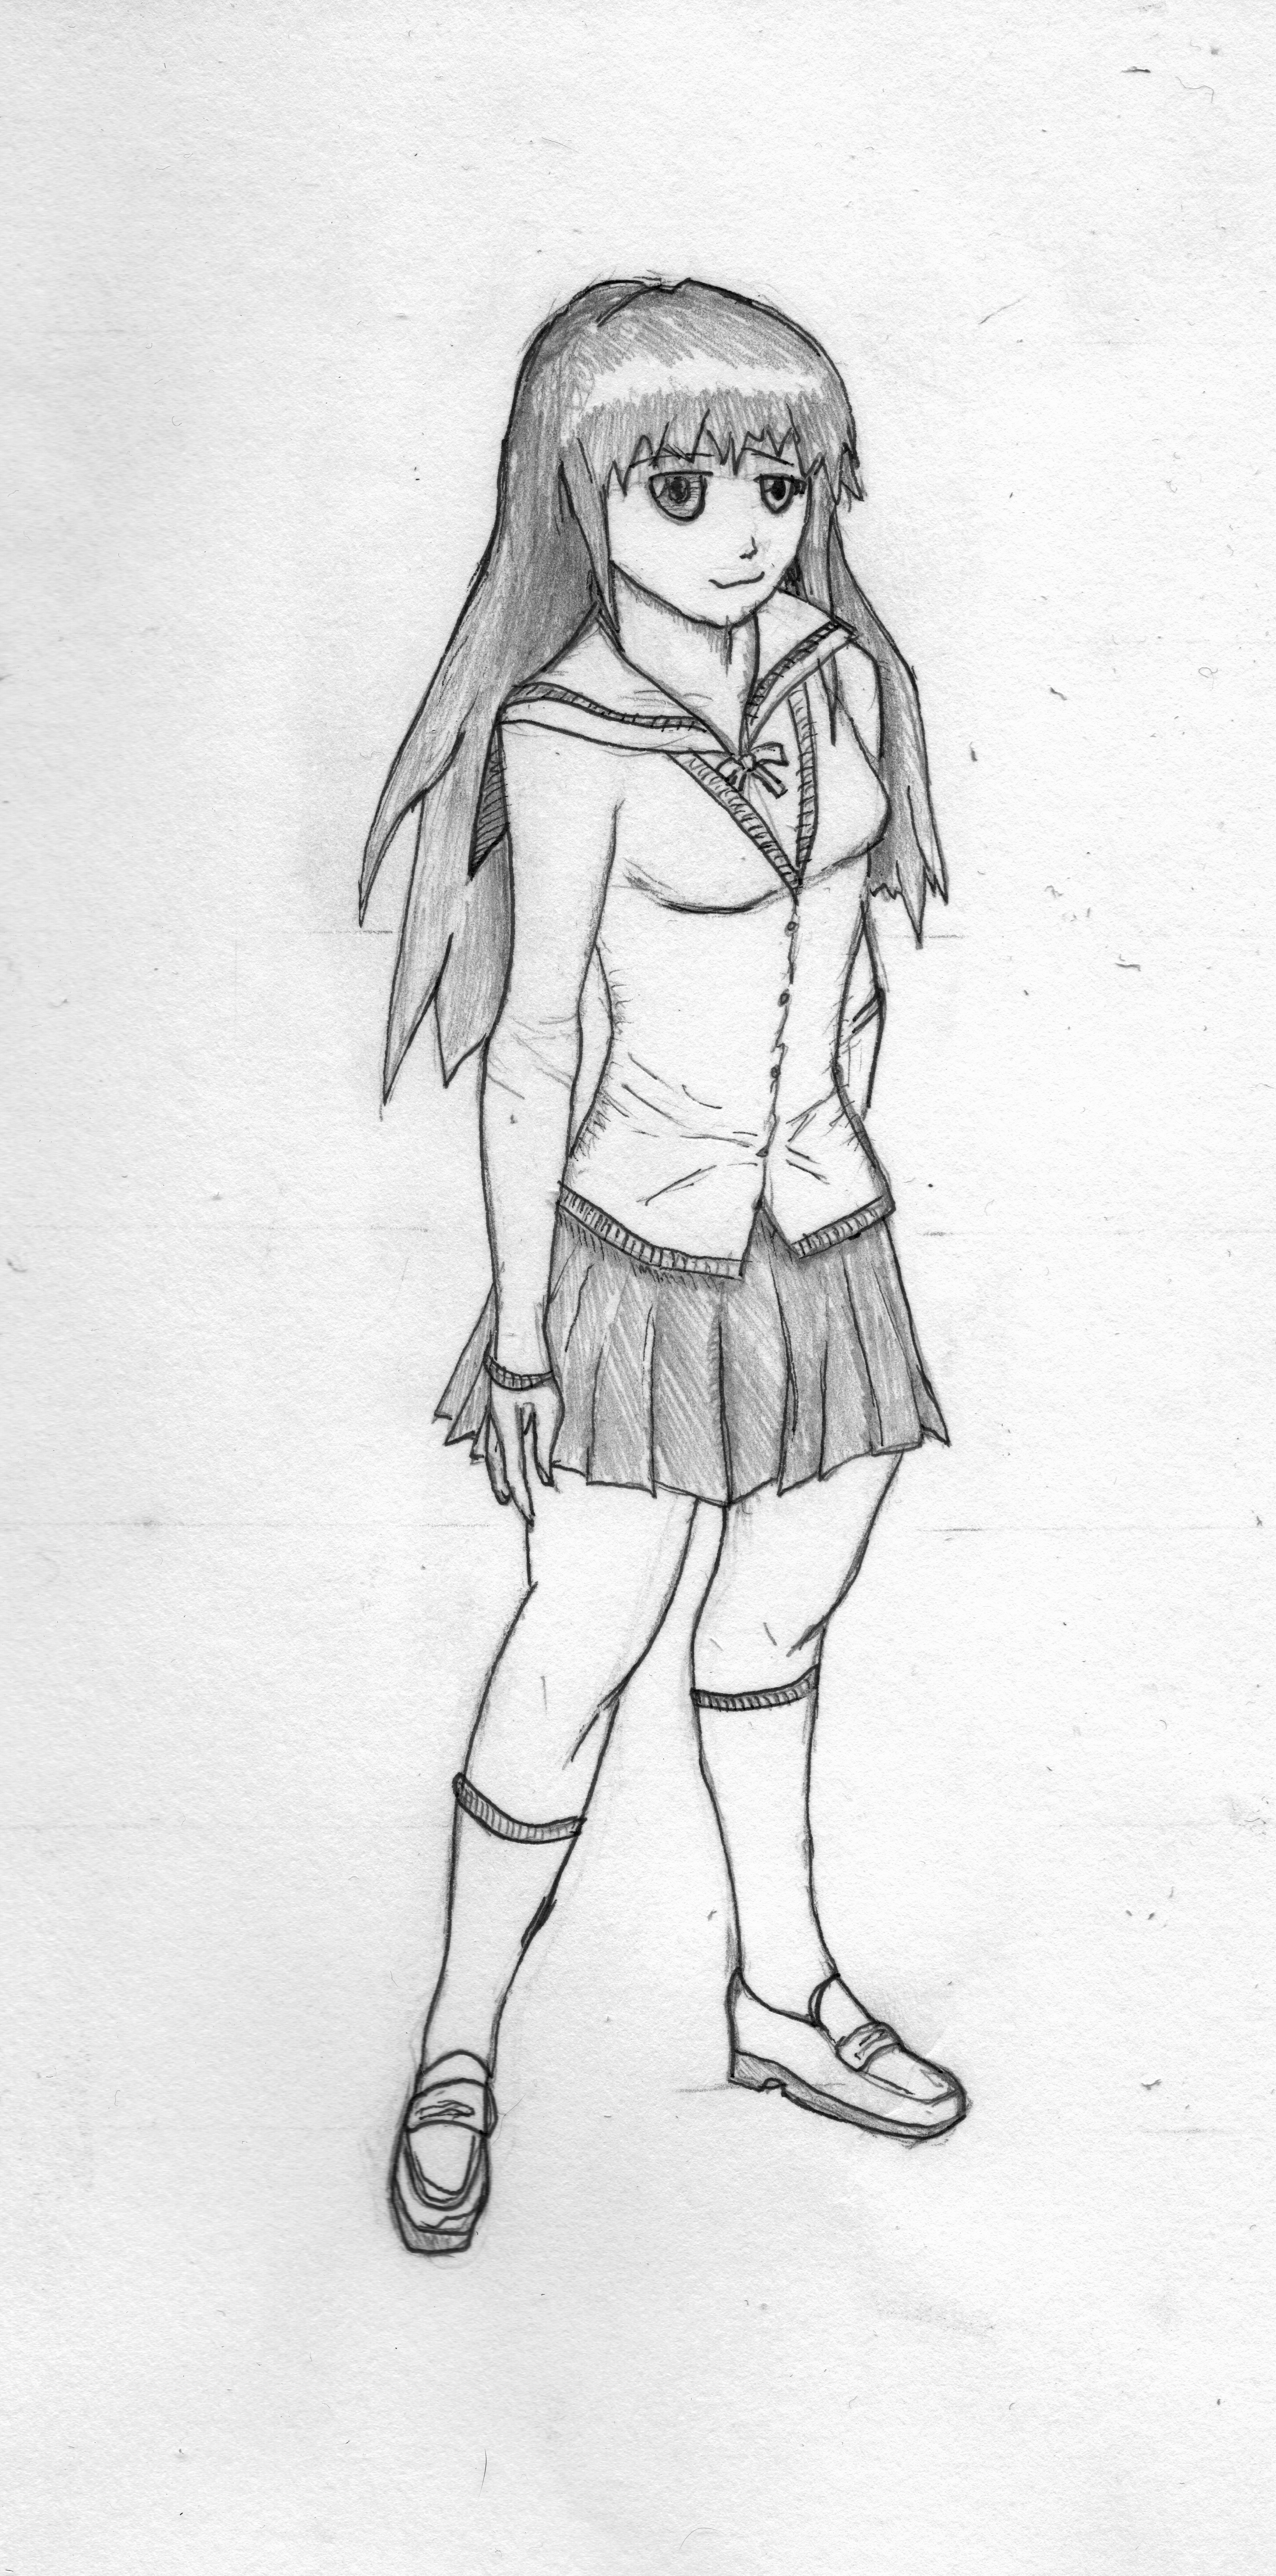 First full body manga drawing d by pneumatictuna on deviantart first full body manga drawing d by pneumatictuna ccuart Images